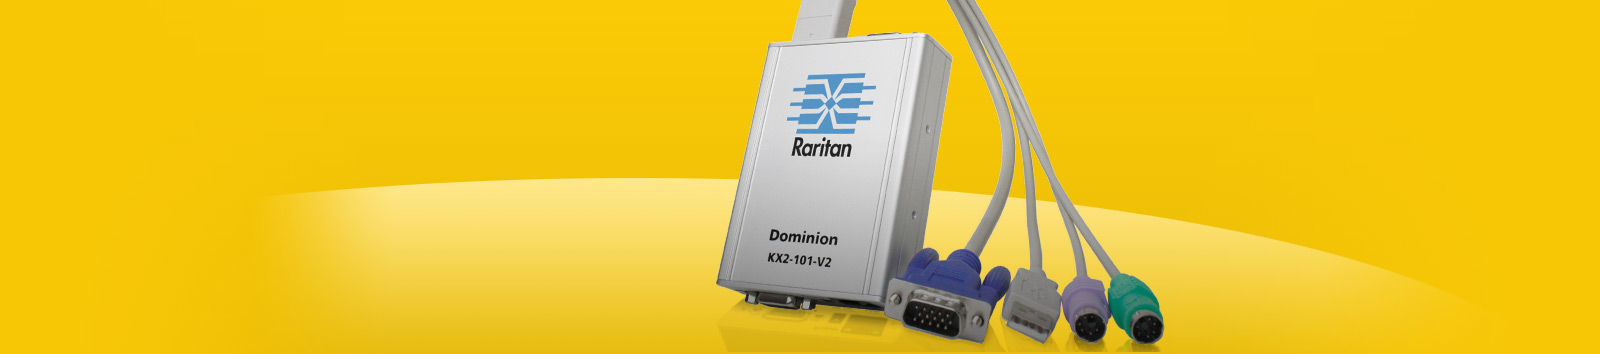 Raritan DKX2-101-V2 Unlimited User KVM Over IP Gateway